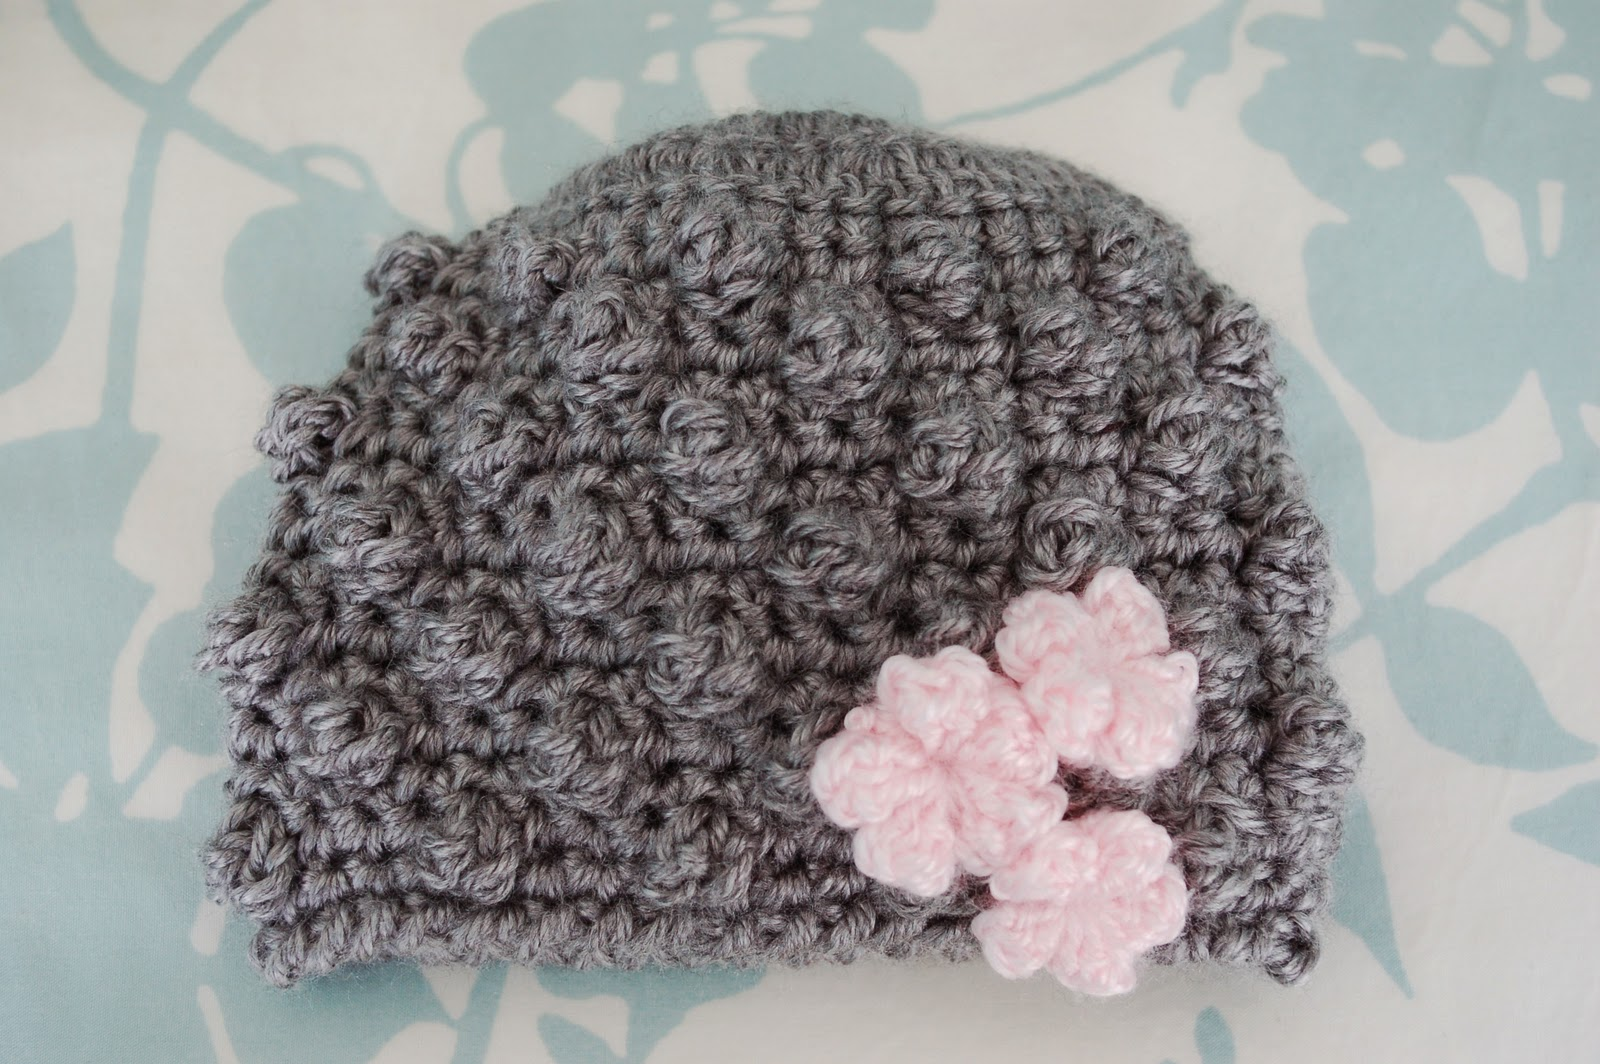 Free Crochet Patterns For Newborn Baby Hats : Alli Crafts: Free Pattern: Bobblicious Baby Hat